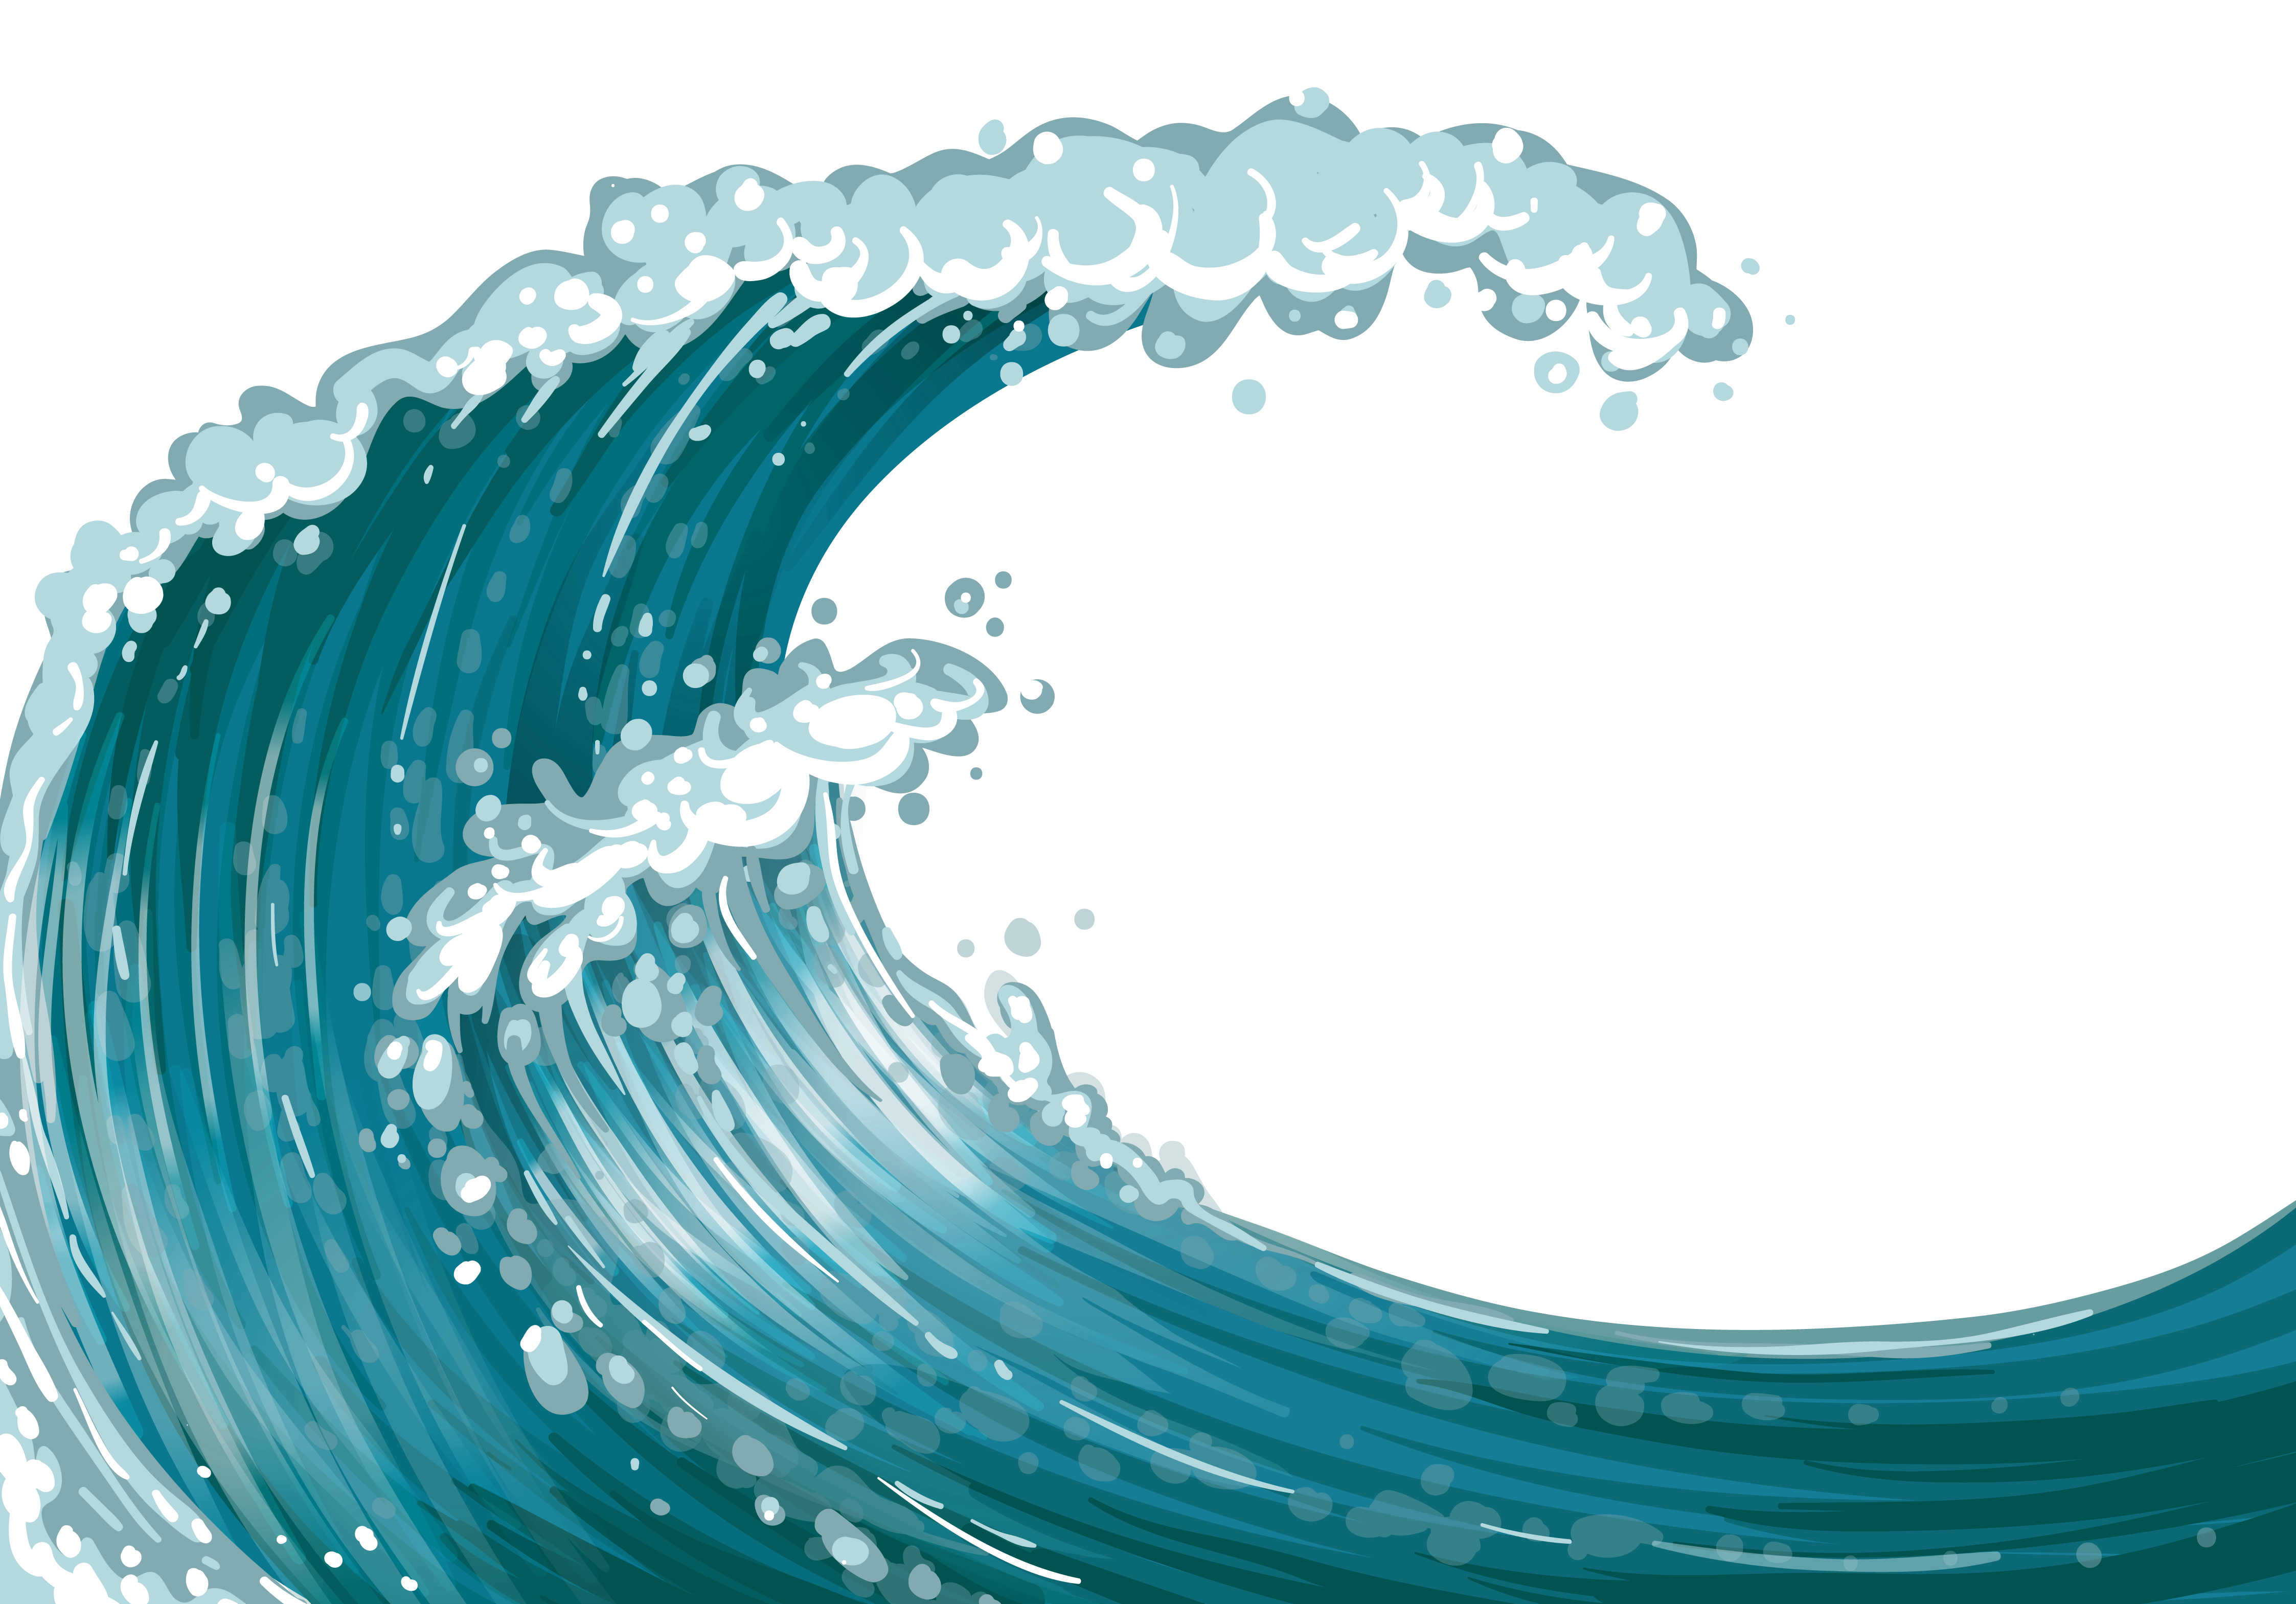 Water wave png. Sea images free download